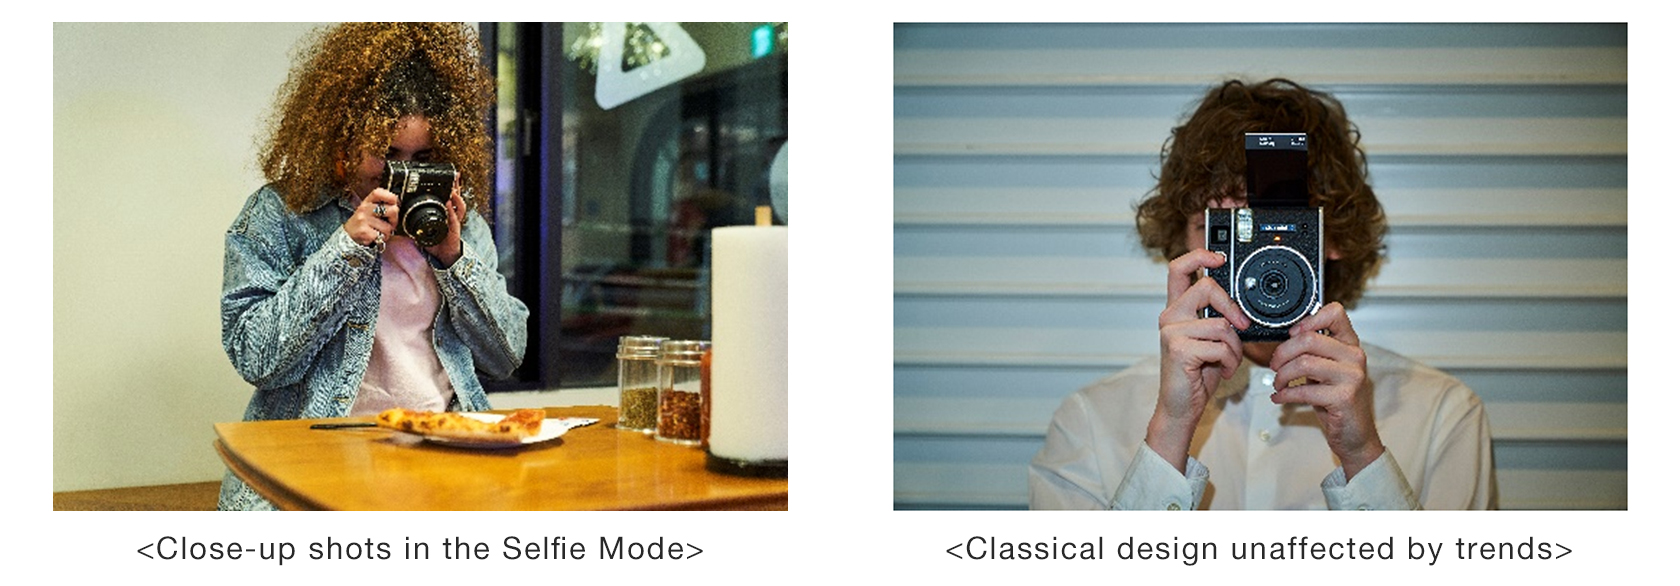 [image]Close-up shots in the Selfie Mode / Classical design unaffected by trends